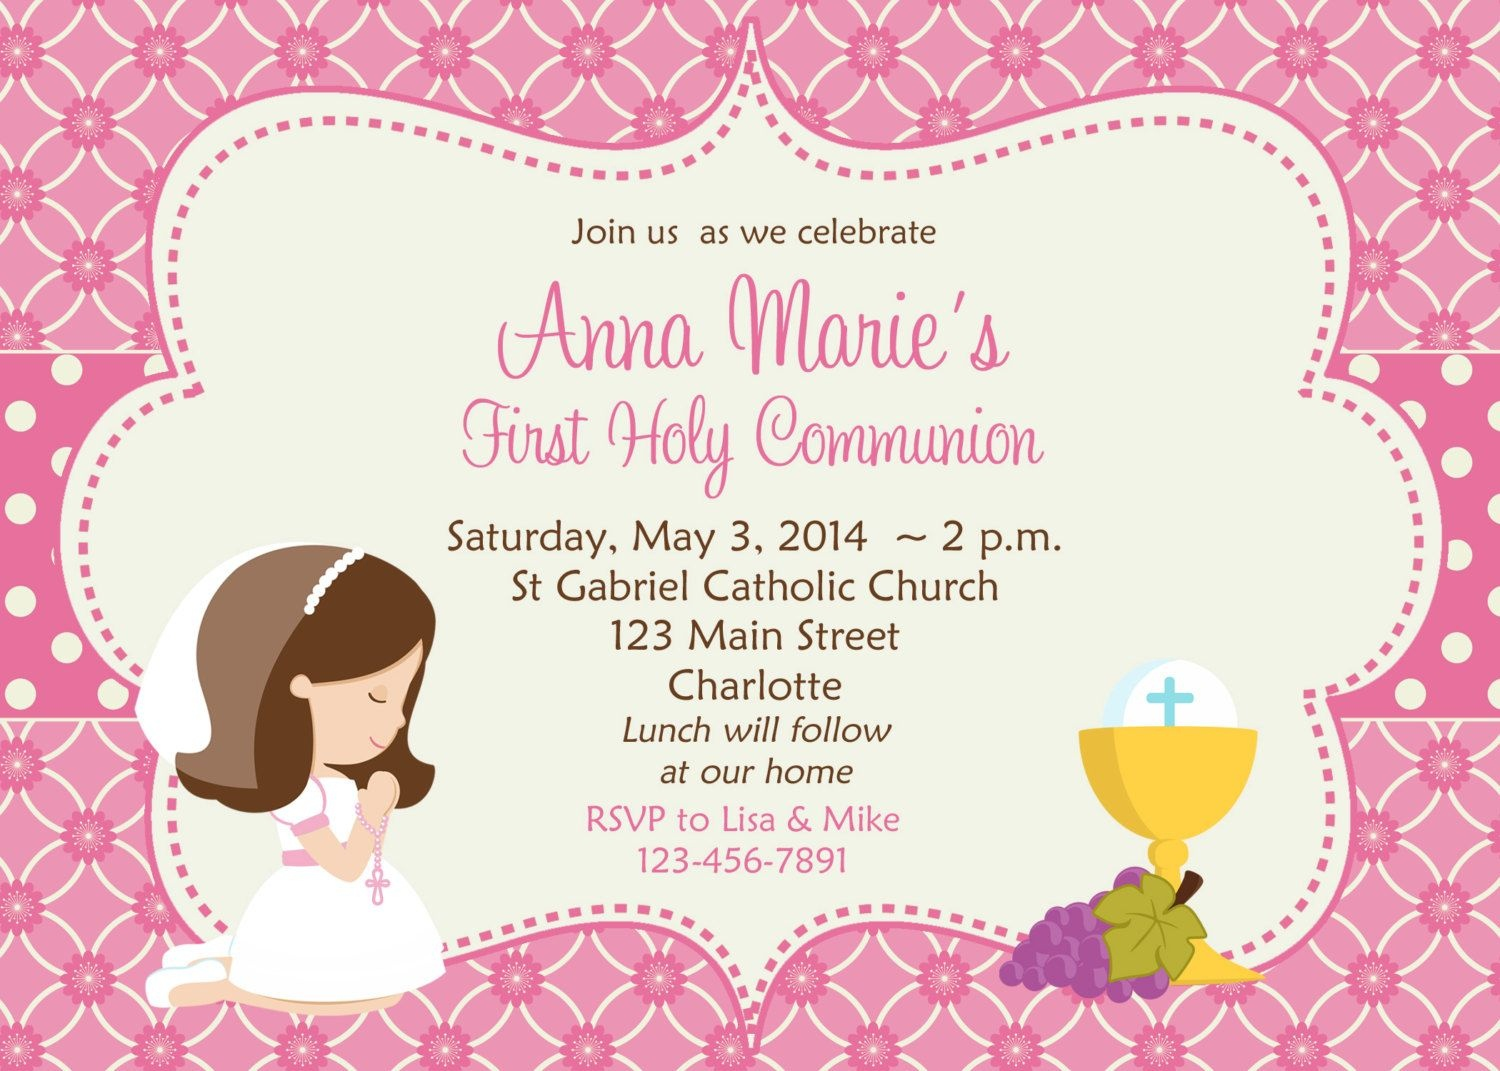 First Holy Communion Invitation Cards Free | Amber's Communion Ideas - Free Printable 1St Communion Invitations